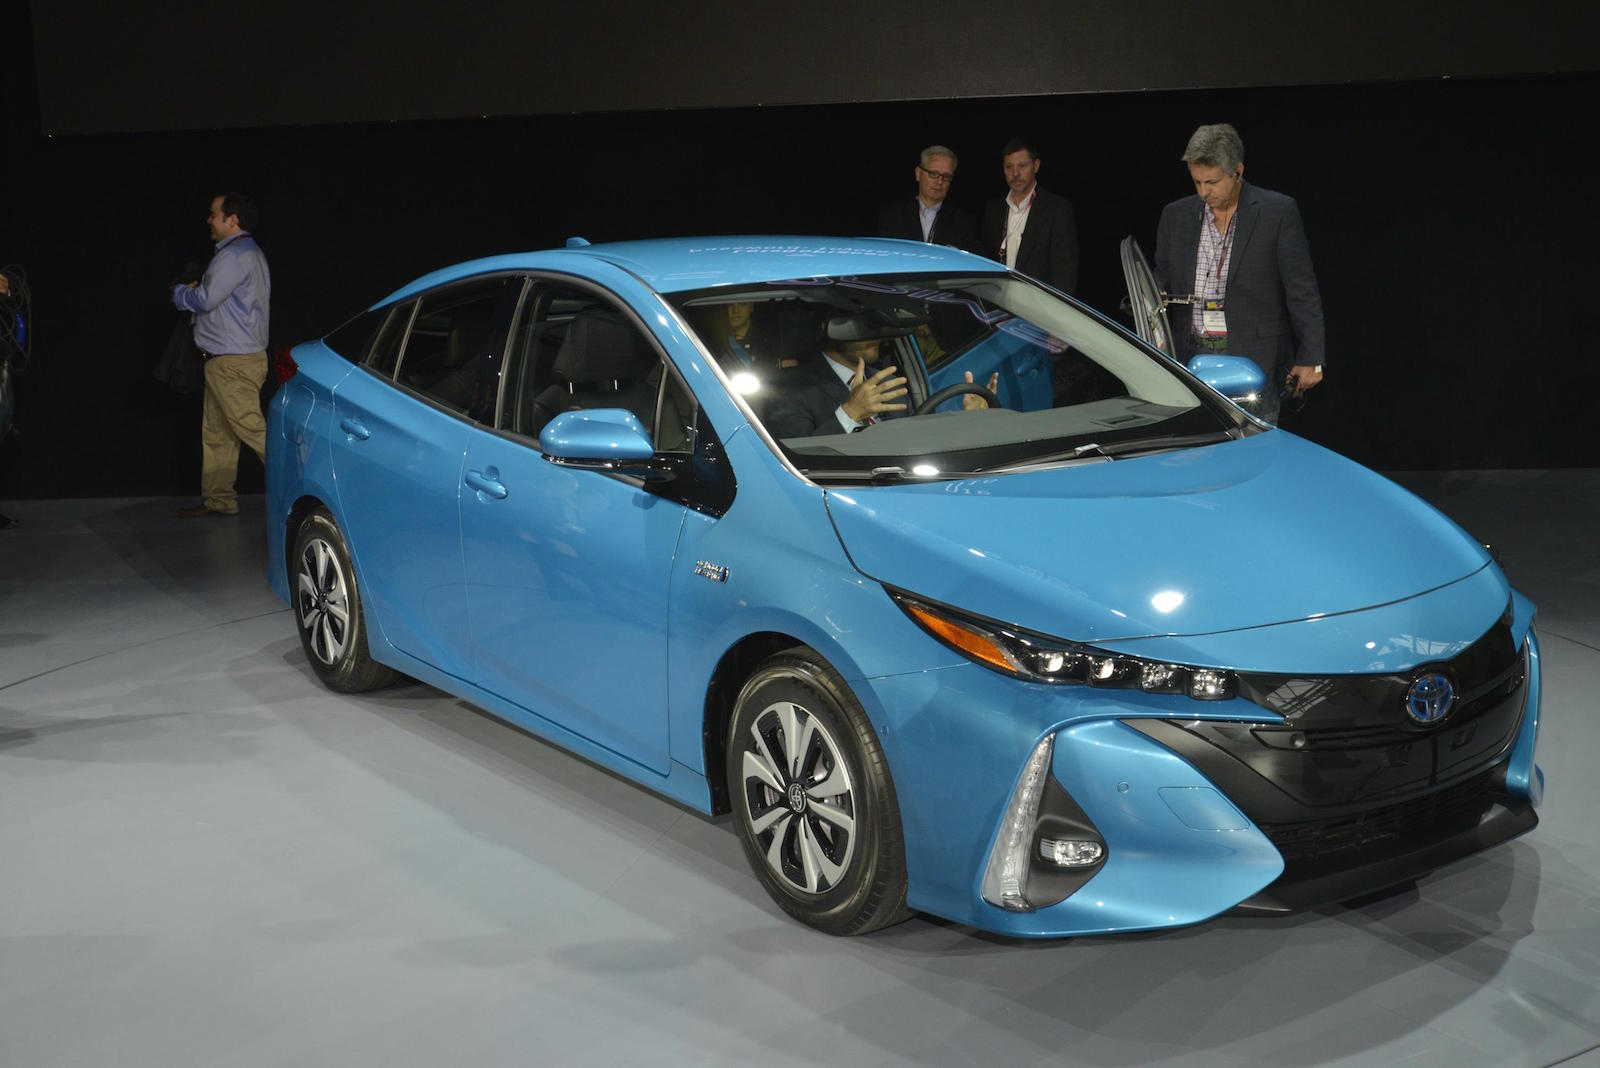 2017 toyota prius prime plug in hybrid promises 22 miles electric range 120 mpge live photos. Black Bedroom Furniture Sets. Home Design Ideas